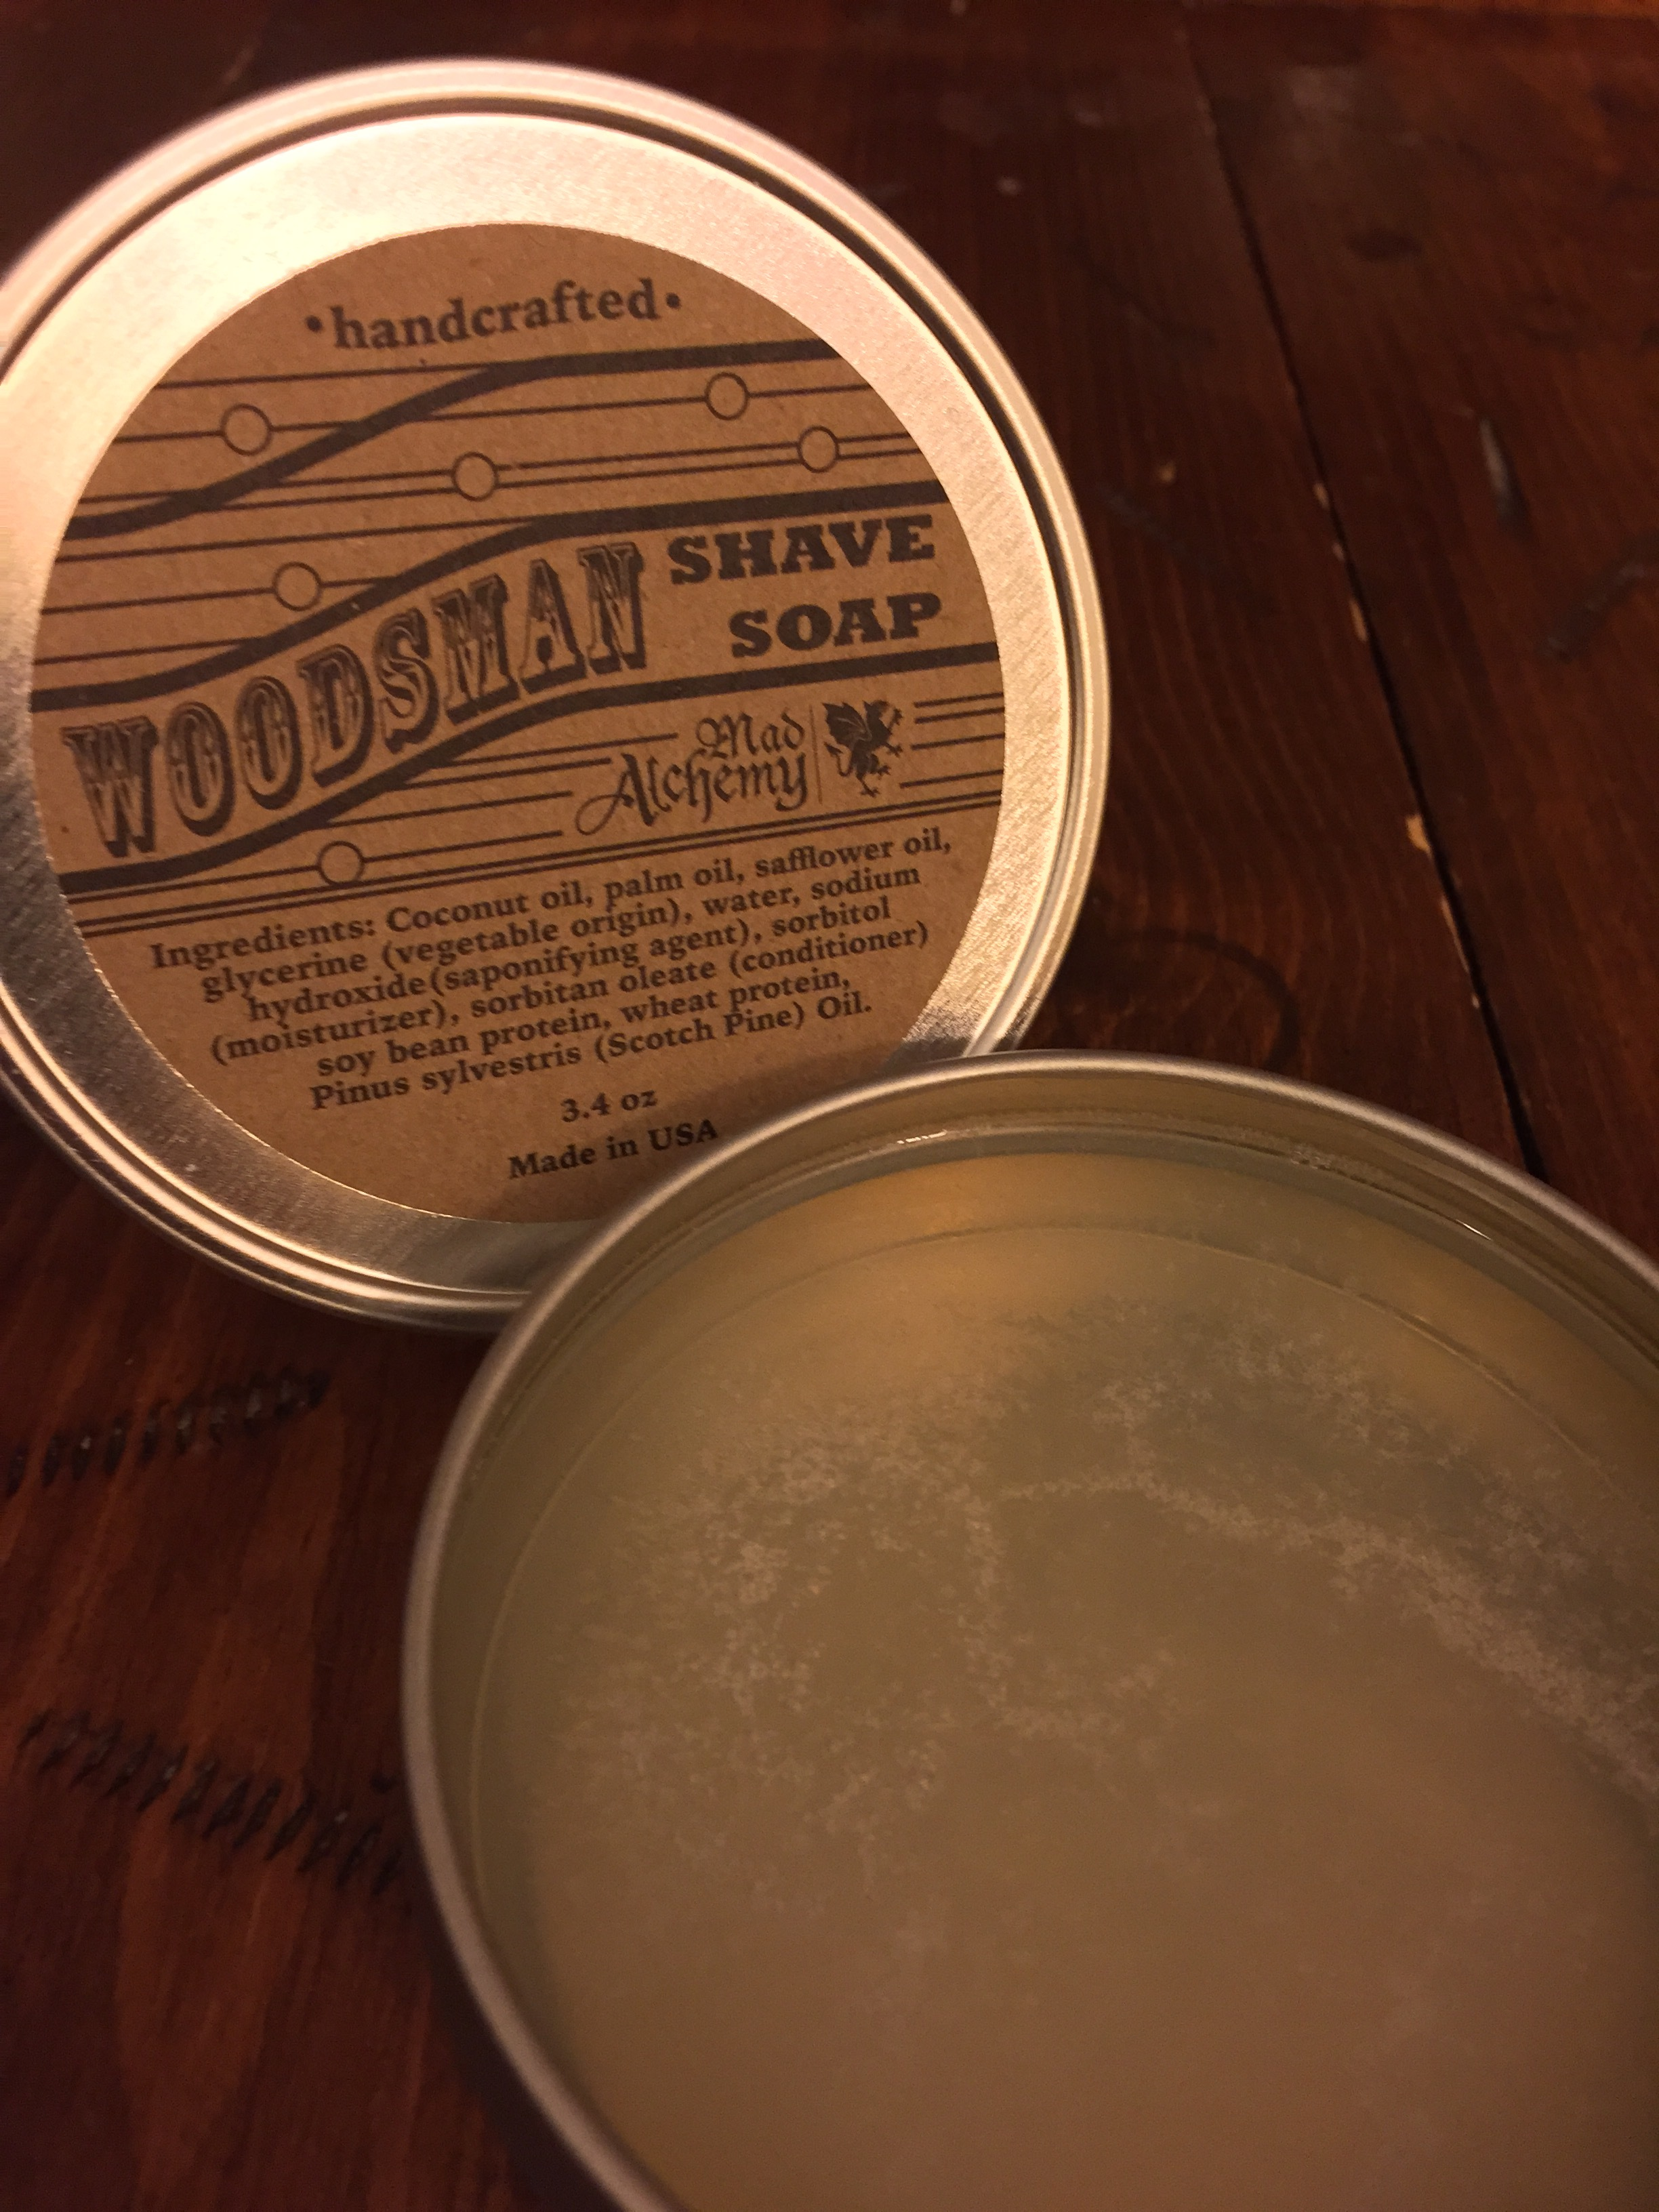 The tin's soap not only looked enticing but it smell inviting. It evoked visions of riding through pine forests across beds of brown needles and absorbtive trees in relaxing solitude.